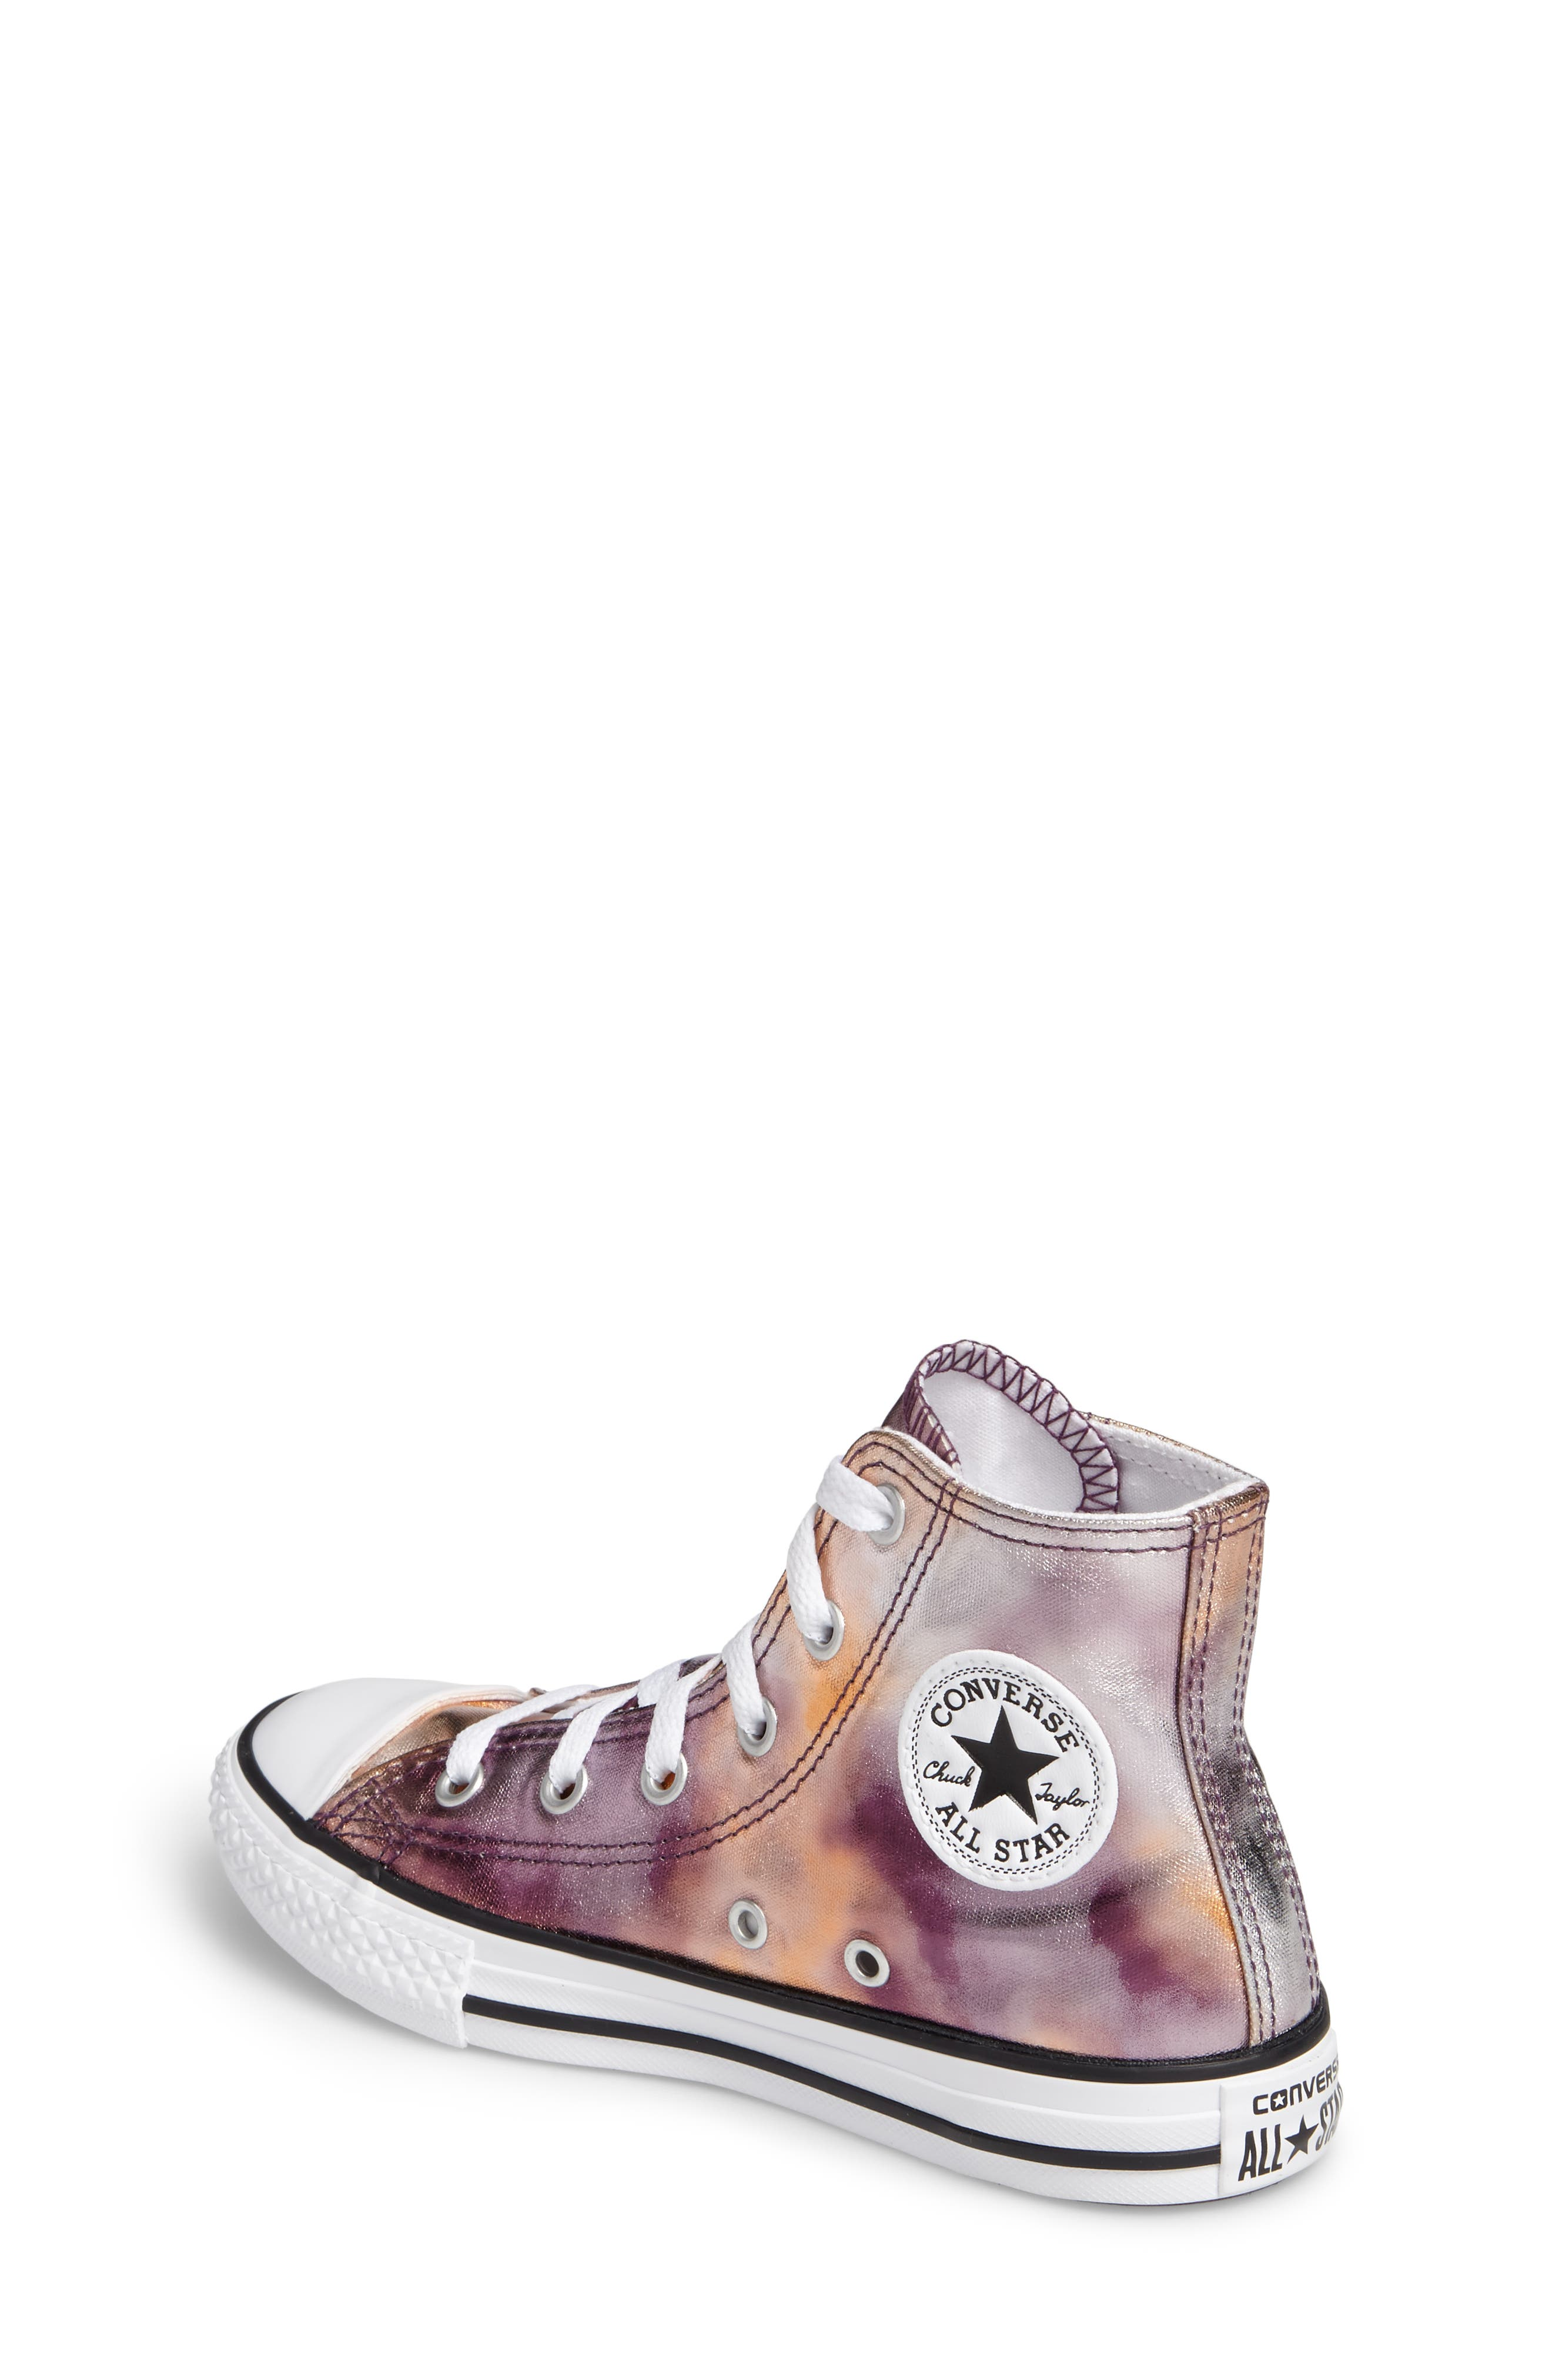 Chuck Taylor<sup>®</sup> All Star<sup>®</sup> Metallic High Top Sneaker,                             Alternate thumbnail 2, color,                             Dusk Pink Coated Canvas